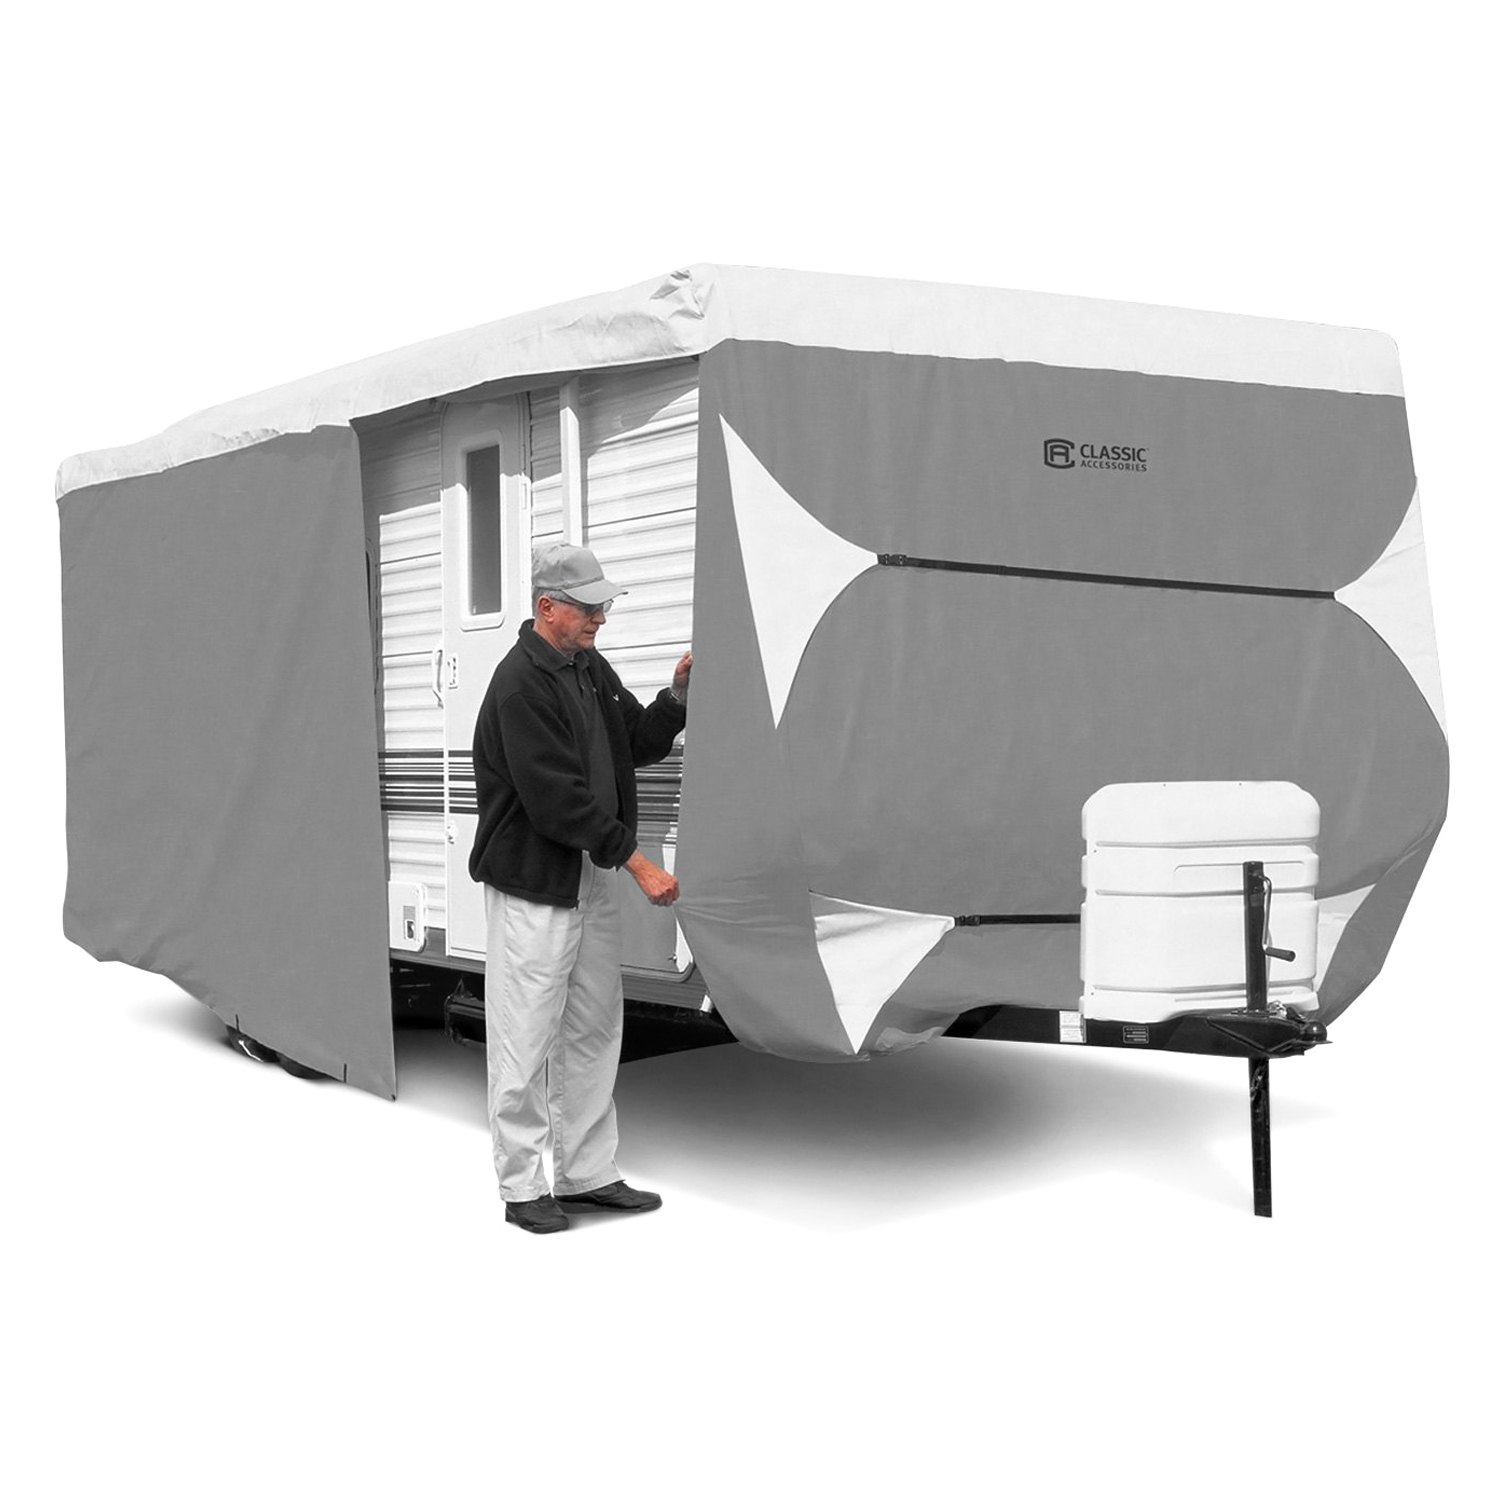 Perfect Travel Cover For Camper Trailer Tent Universal Fit For Most Models 2